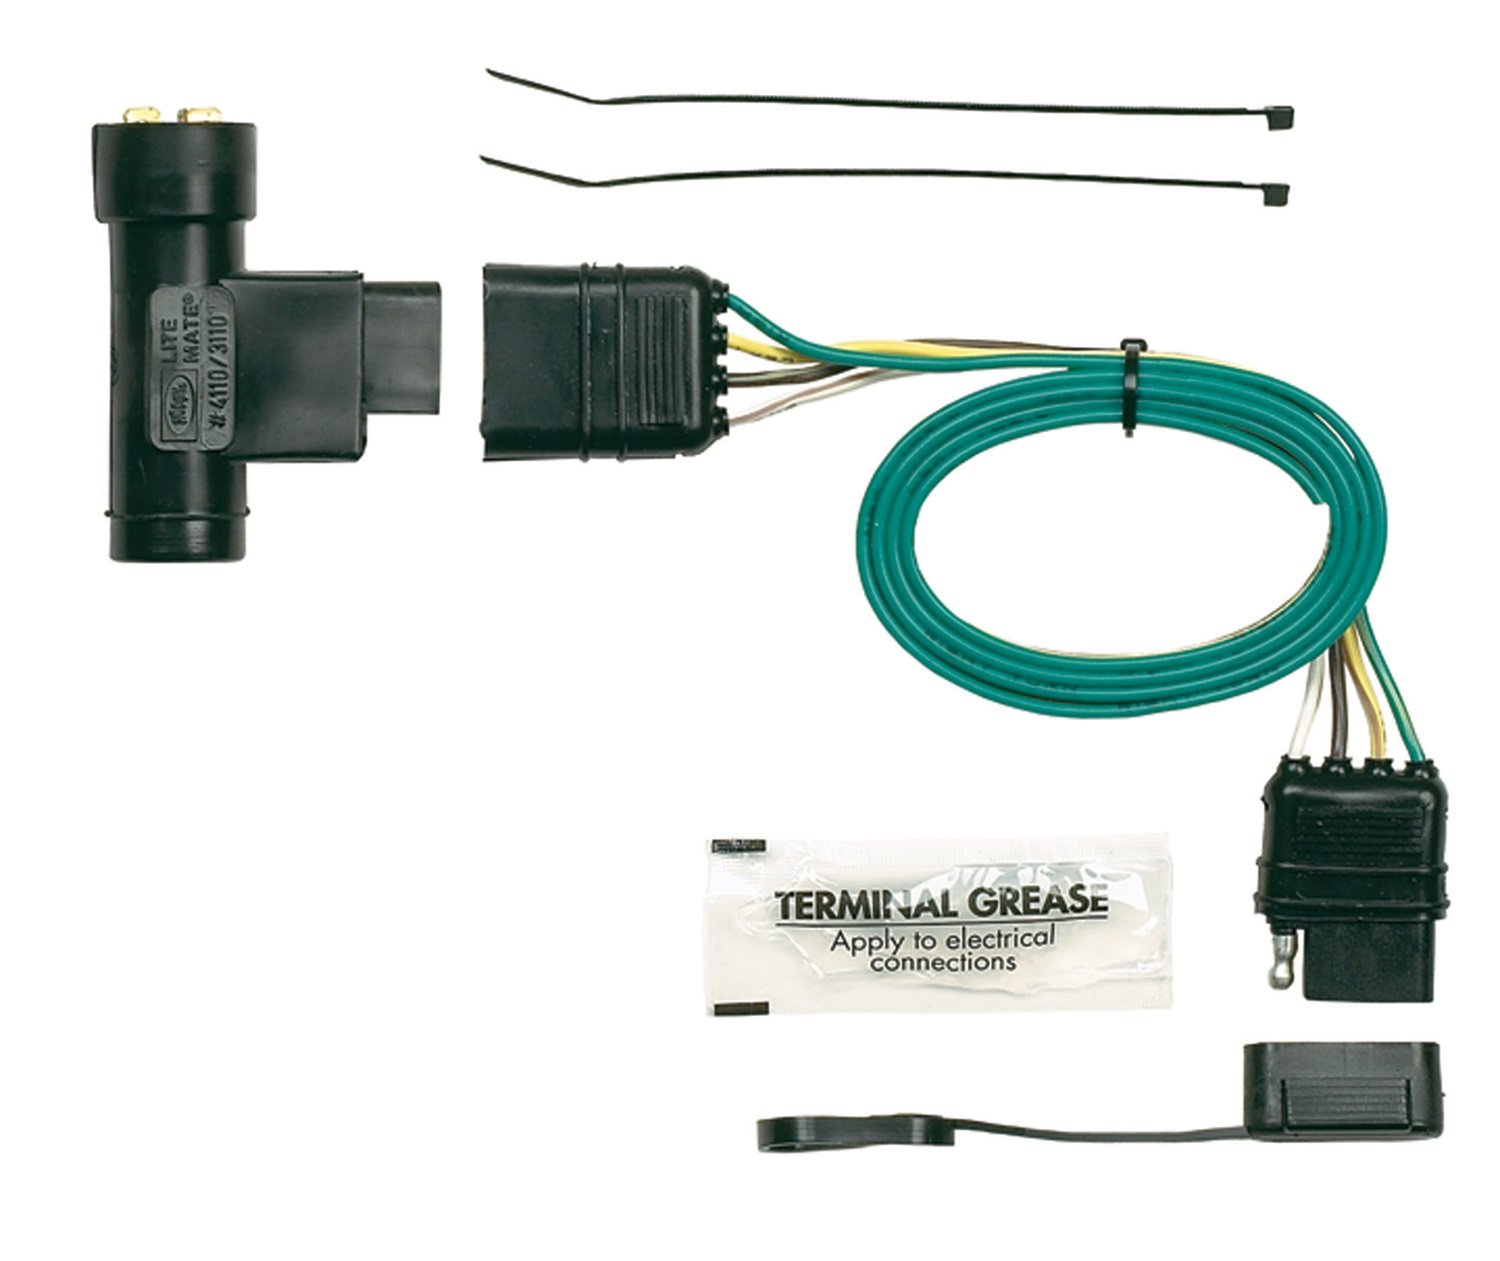 61WwgAY1zlL._SL1500_ amazon com hopkins 41105 plug in simple vehicle wiring kit hopkins towing solutions wiring diagram at panicattacktreatment.co